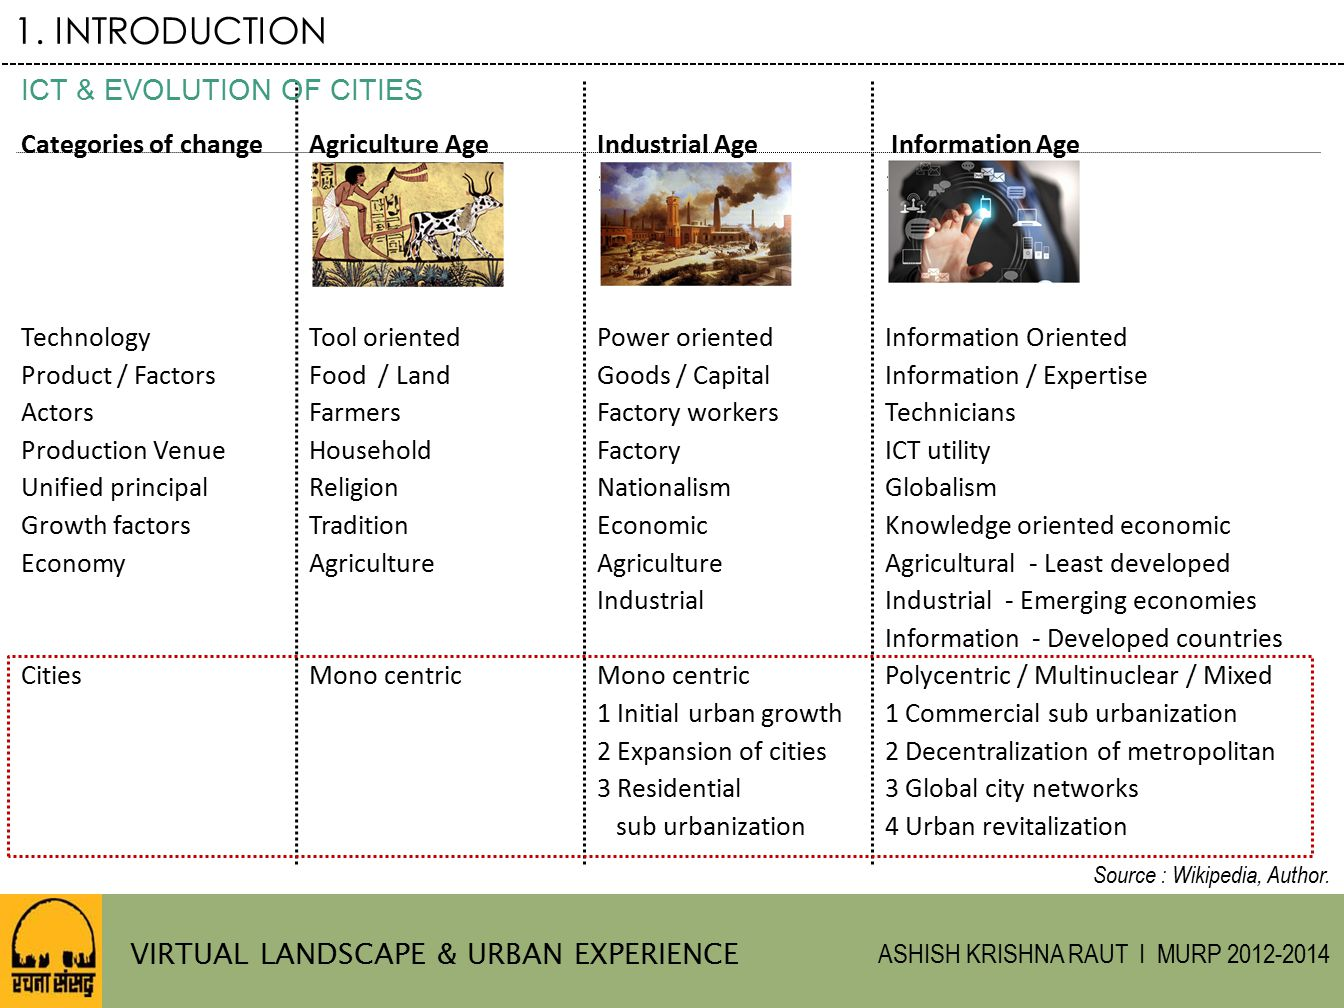 1. INTRODUCTION ICT & EVOLUTION OF CITIES